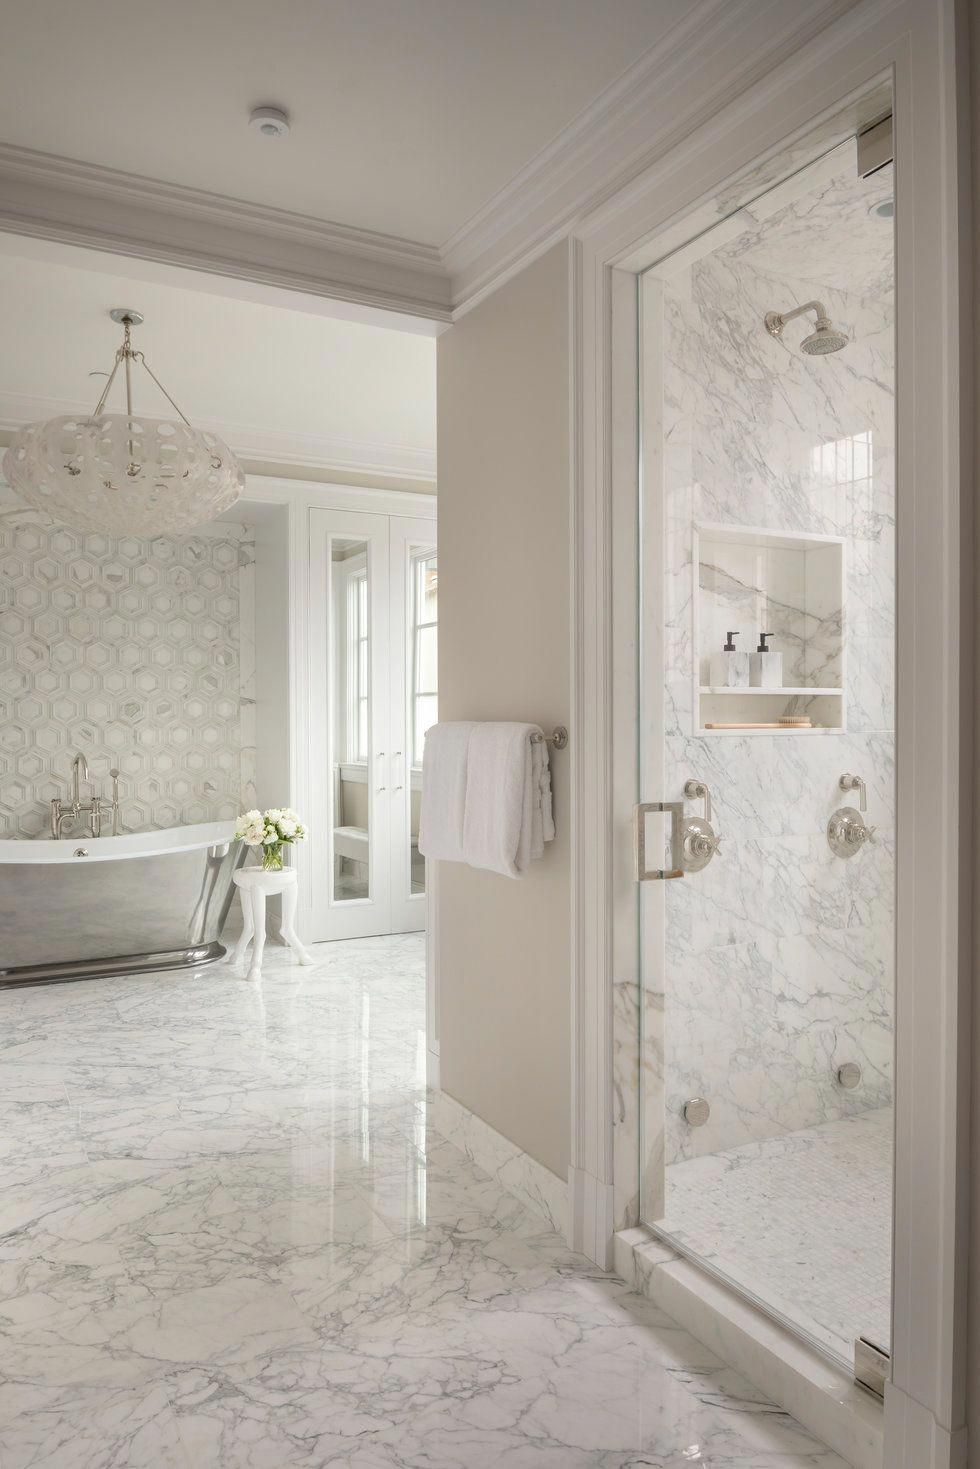 How to clean leather? White marble bathrooms, Big